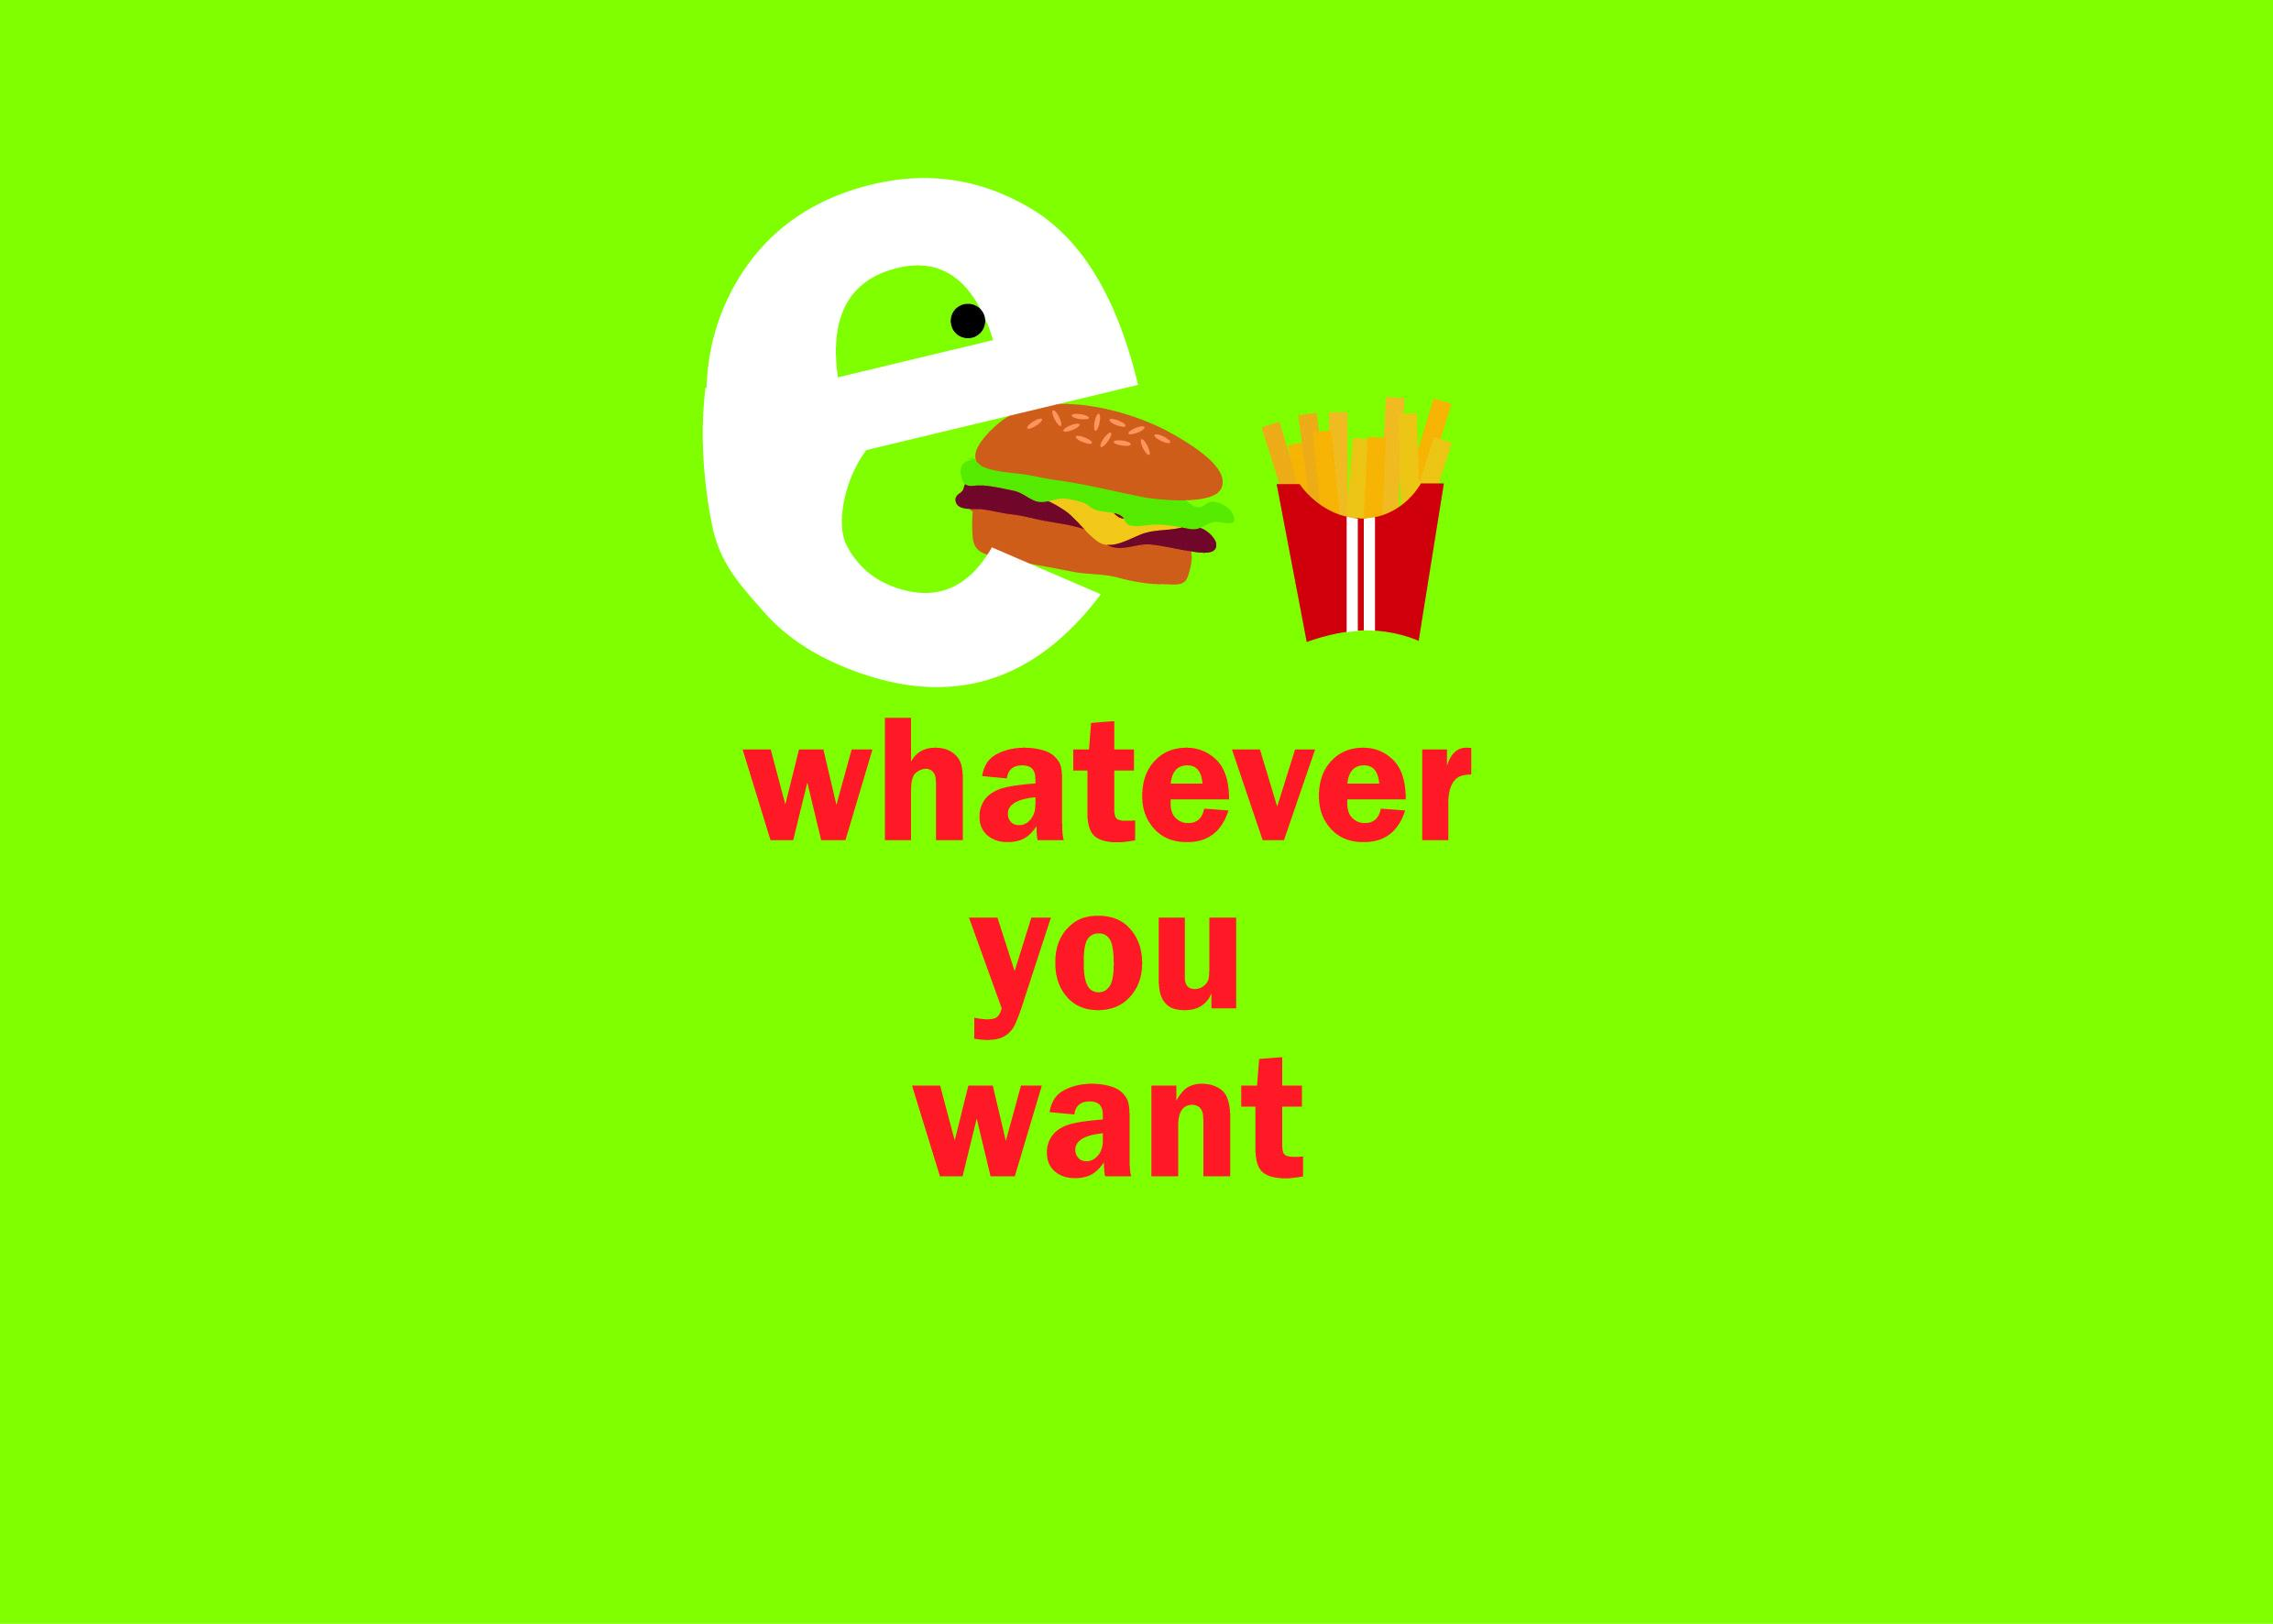 eating is fun - image 8 - student project